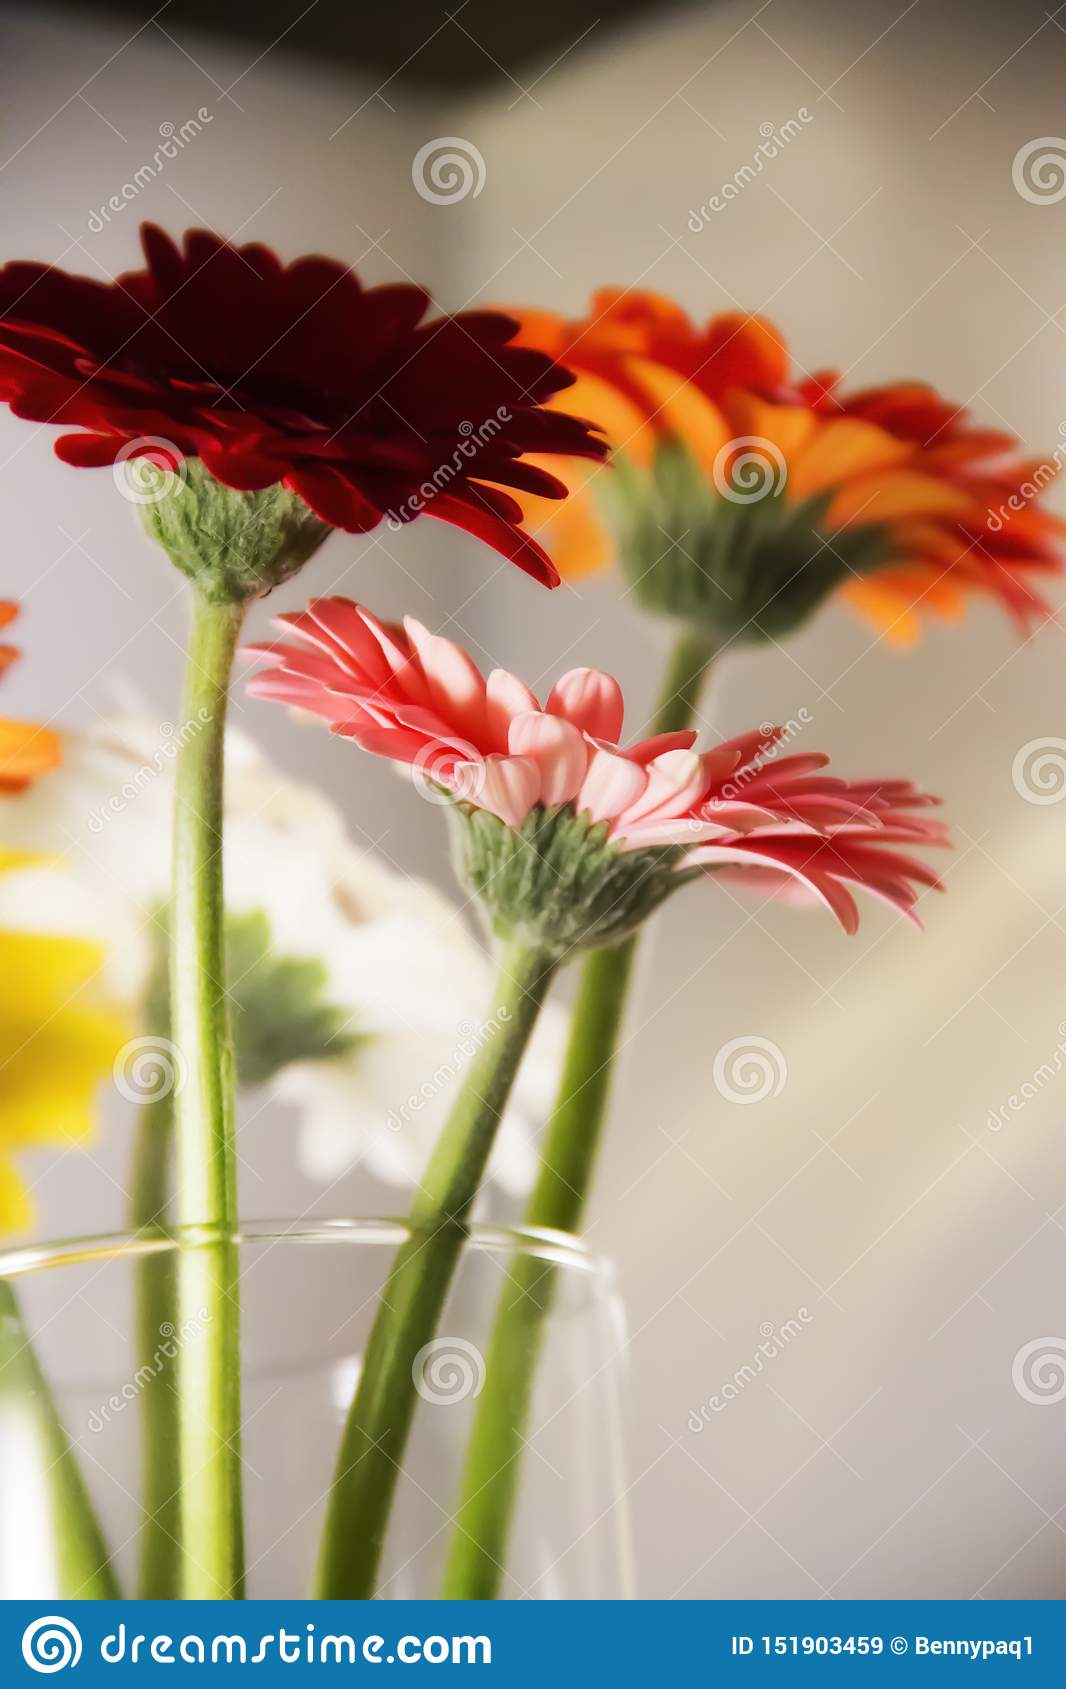 Colorful Gerbera Daisies In A Vase Stock Image - Image of ...